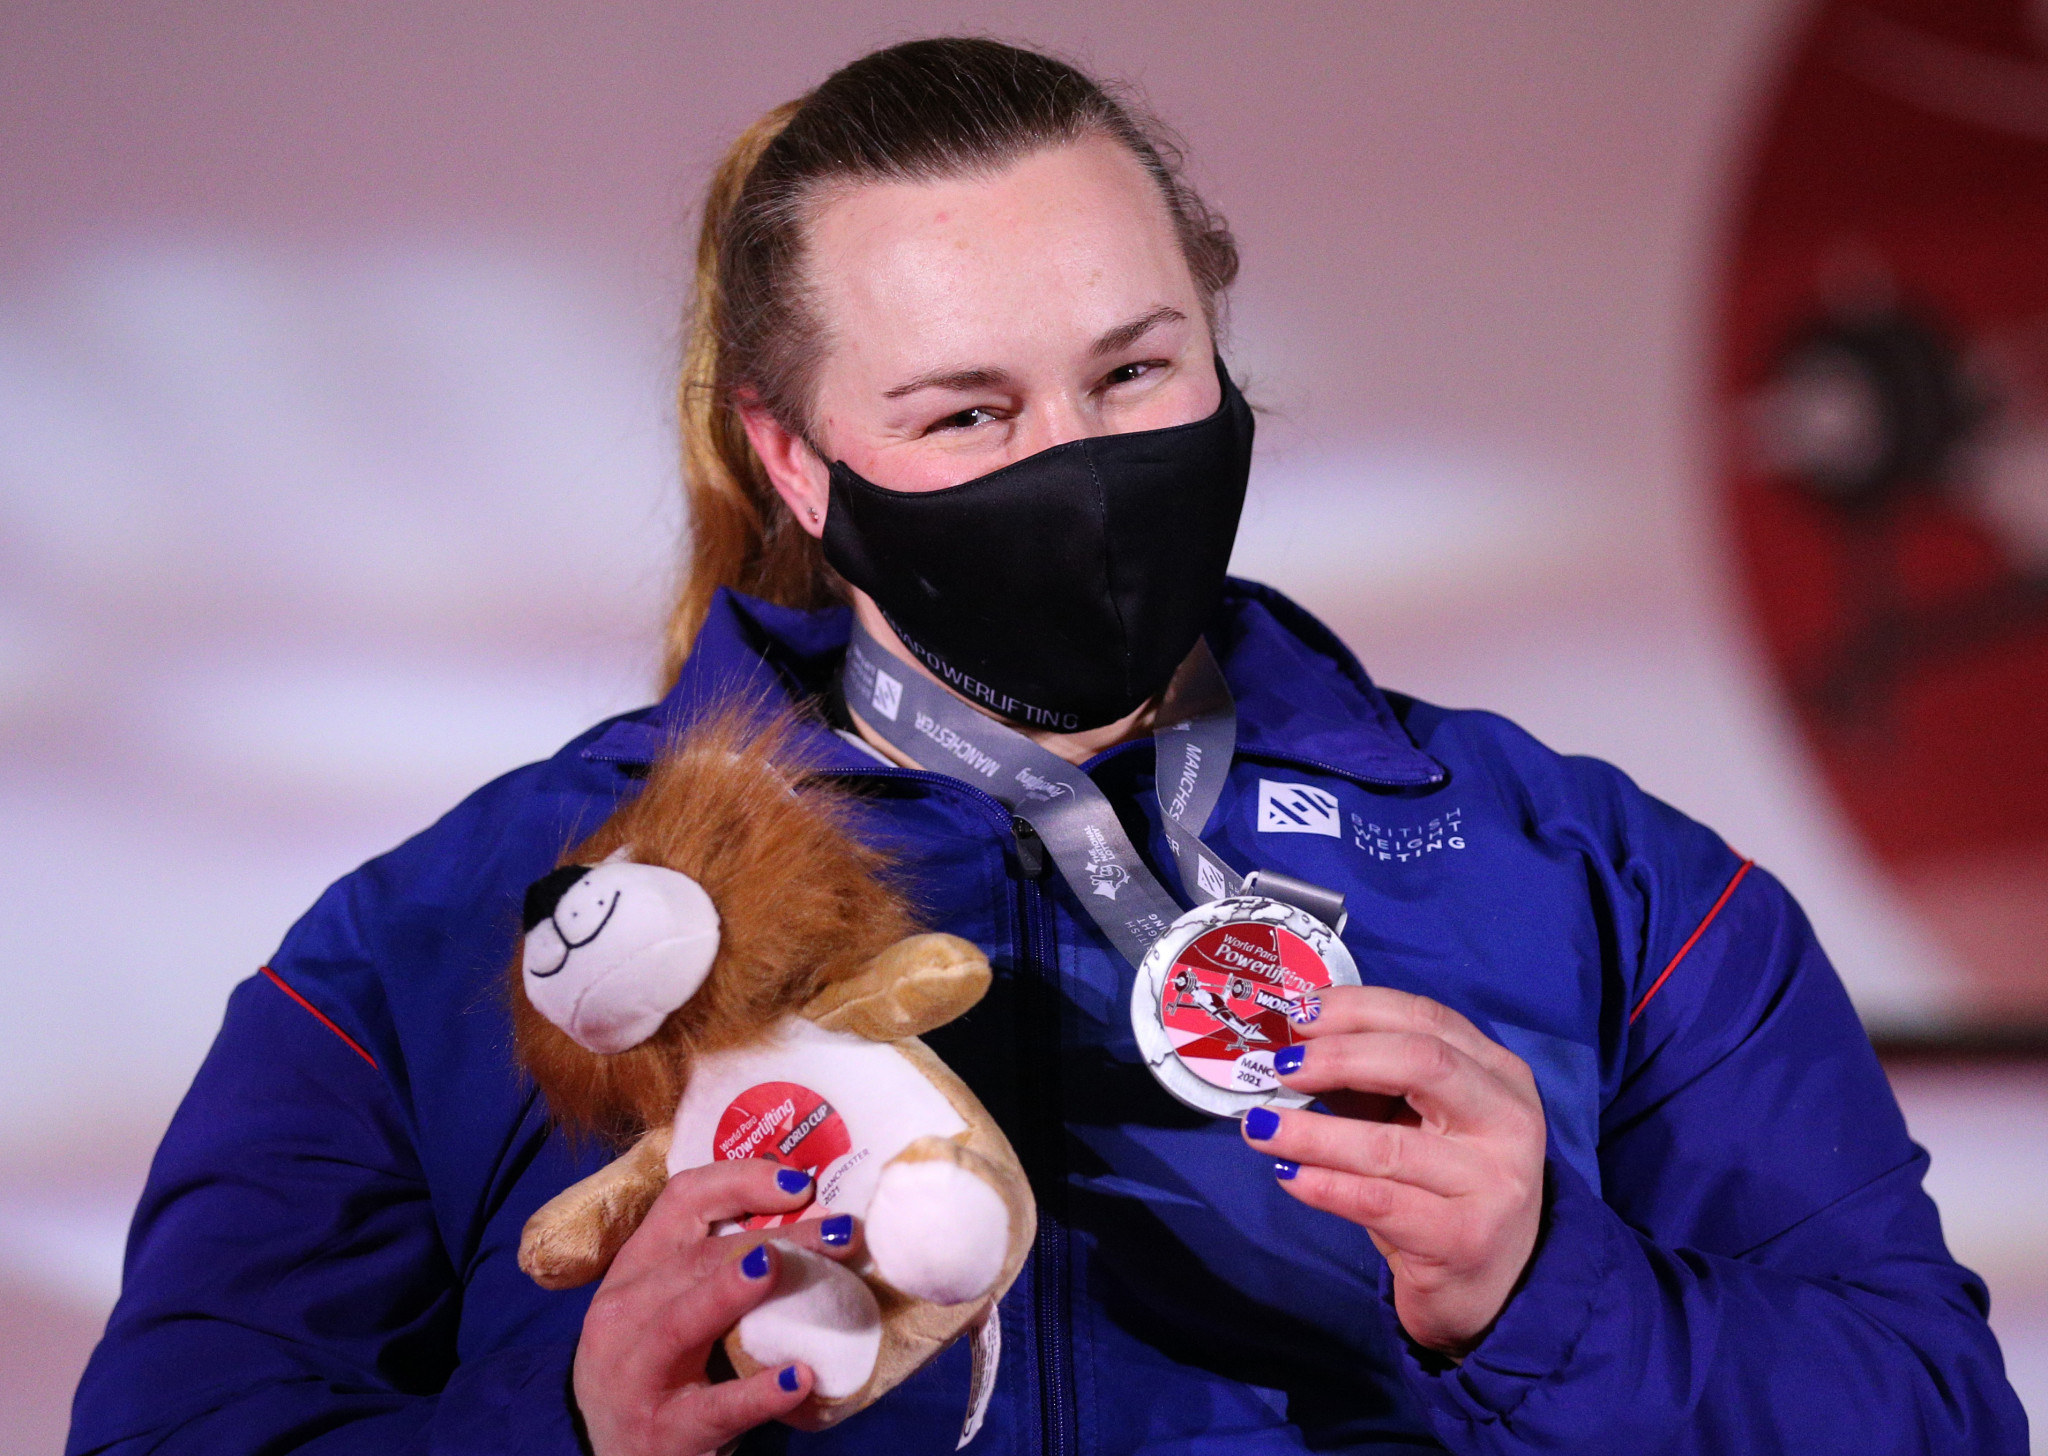 Louise Sugden won silver at the Manchester leg of the World Para Powerlifting World Cup ©Getty Images